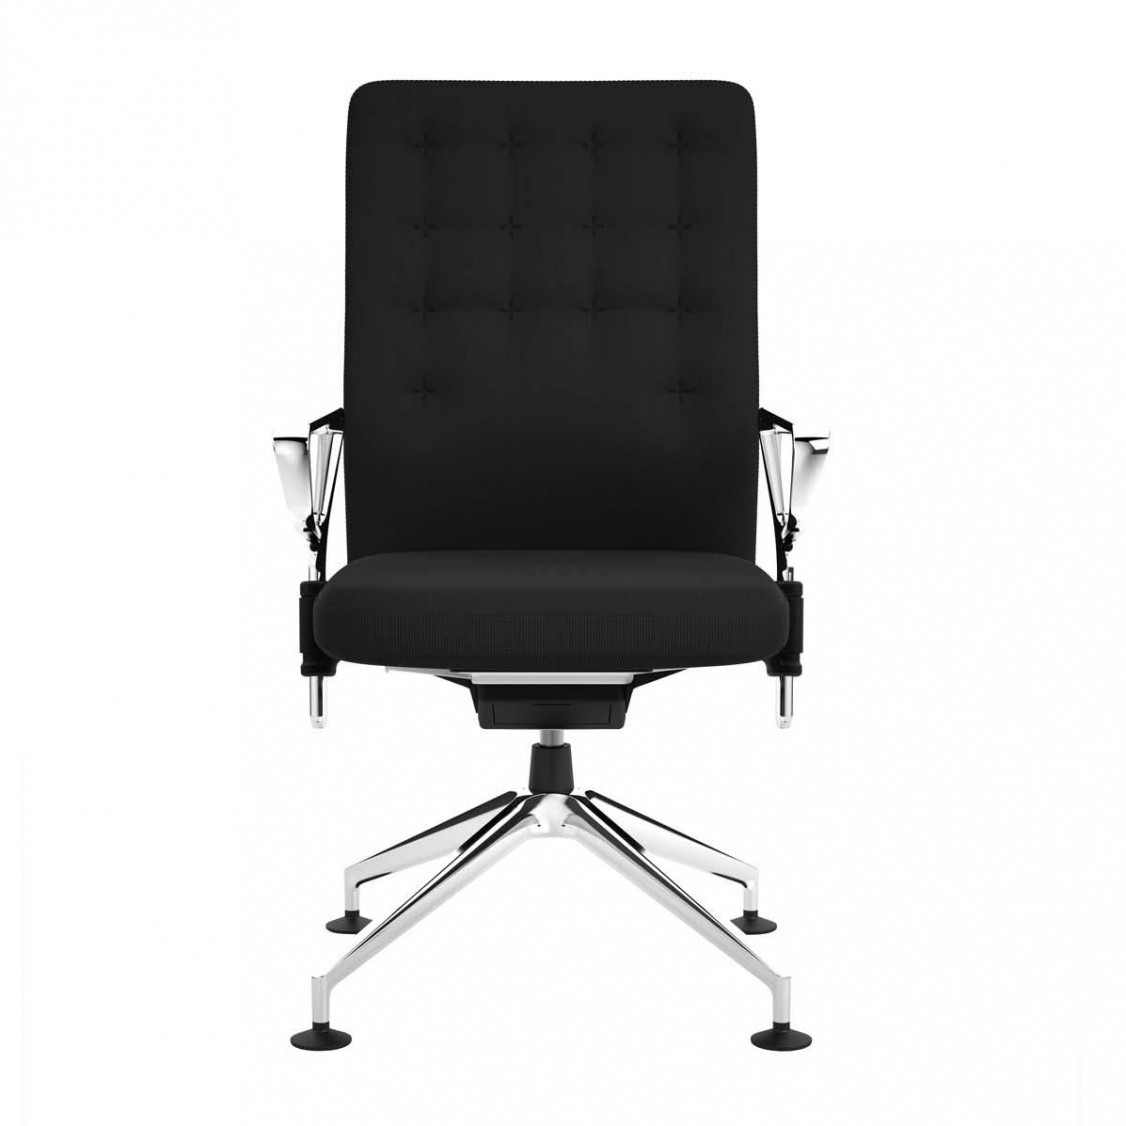 vitra id trim citterio office conference chair ambientedirect. Black Bedroom Furniture Sets. Home Design Ideas